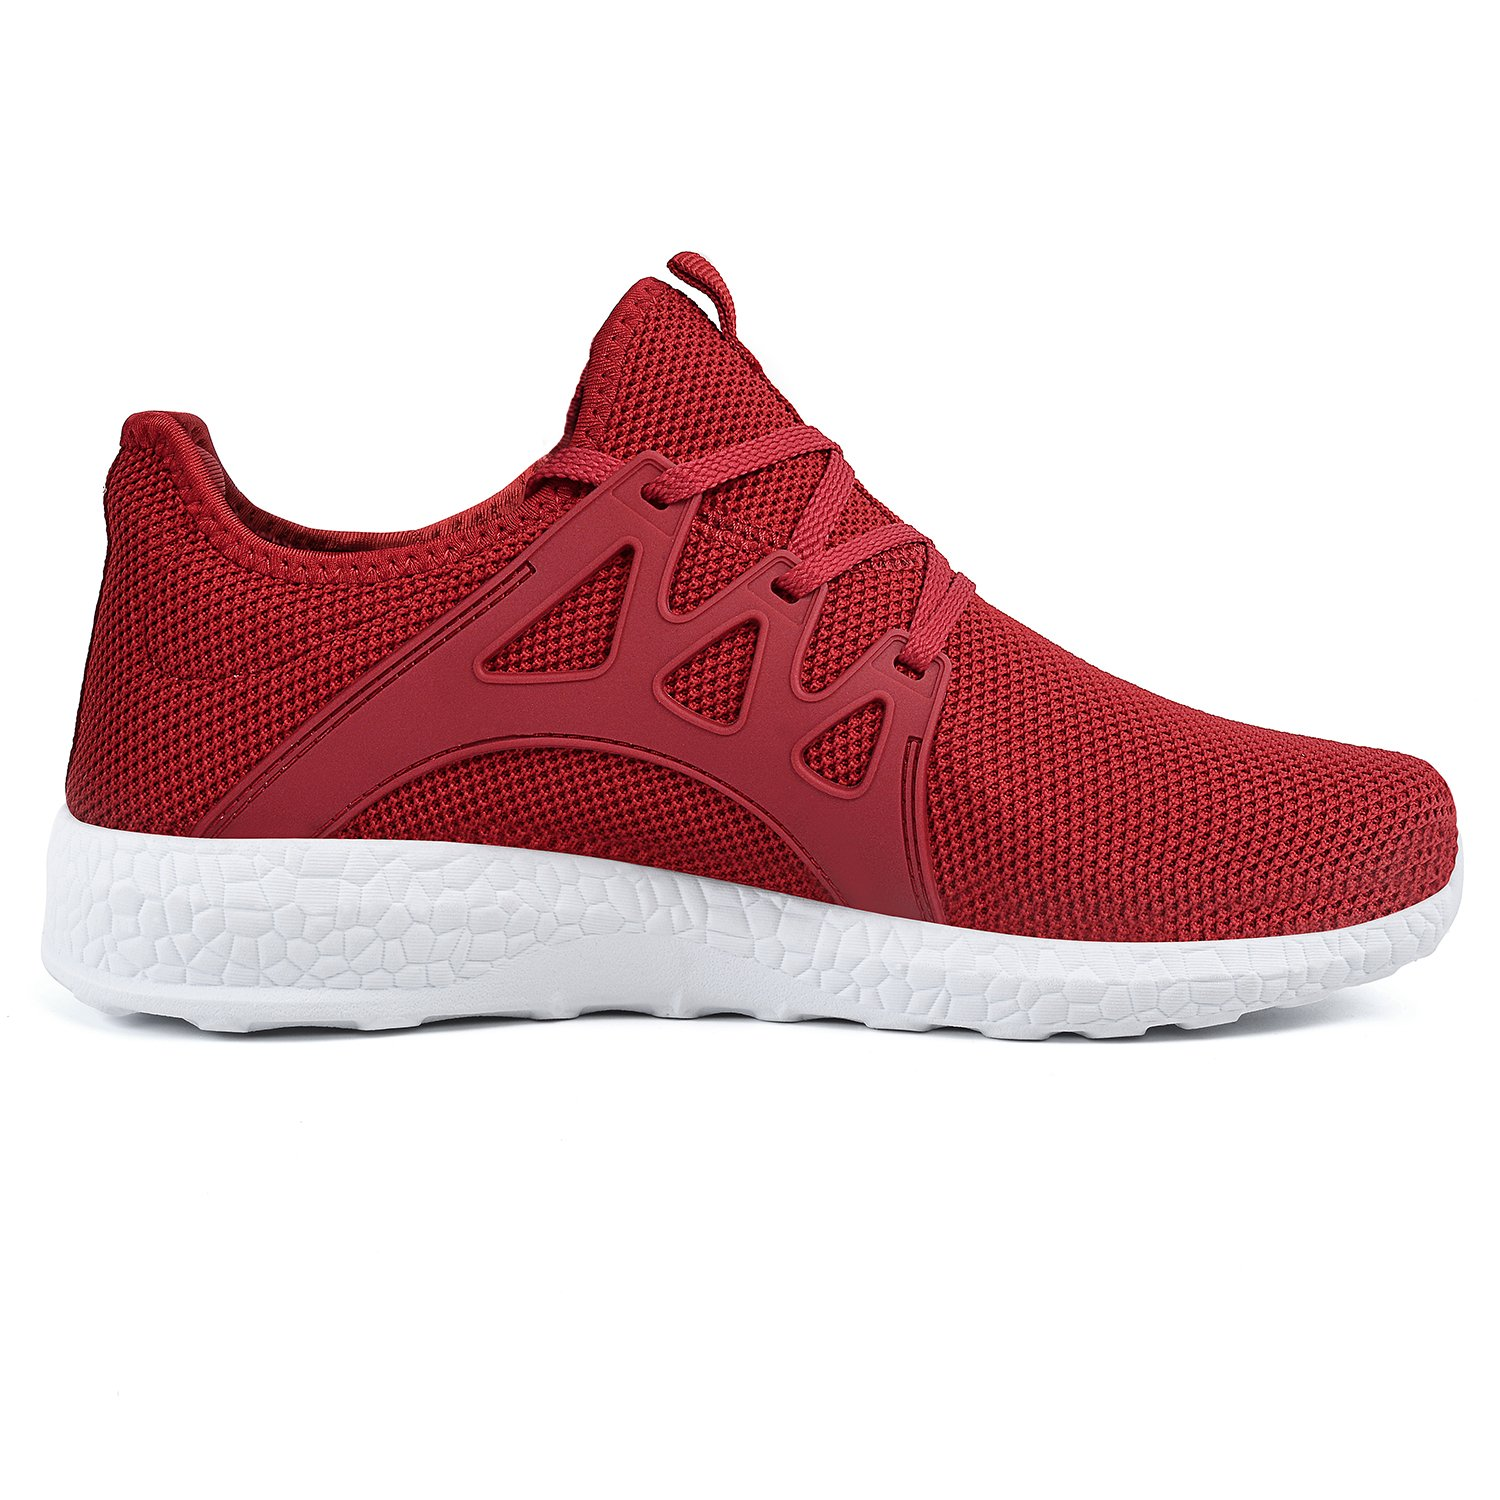 Feetmat Womens Sneakers Ultra Lightweight Breathable Mesh Walking Gym Tennis Athletic Running Shoes B07C6N3QBY 8 M US|Red/White